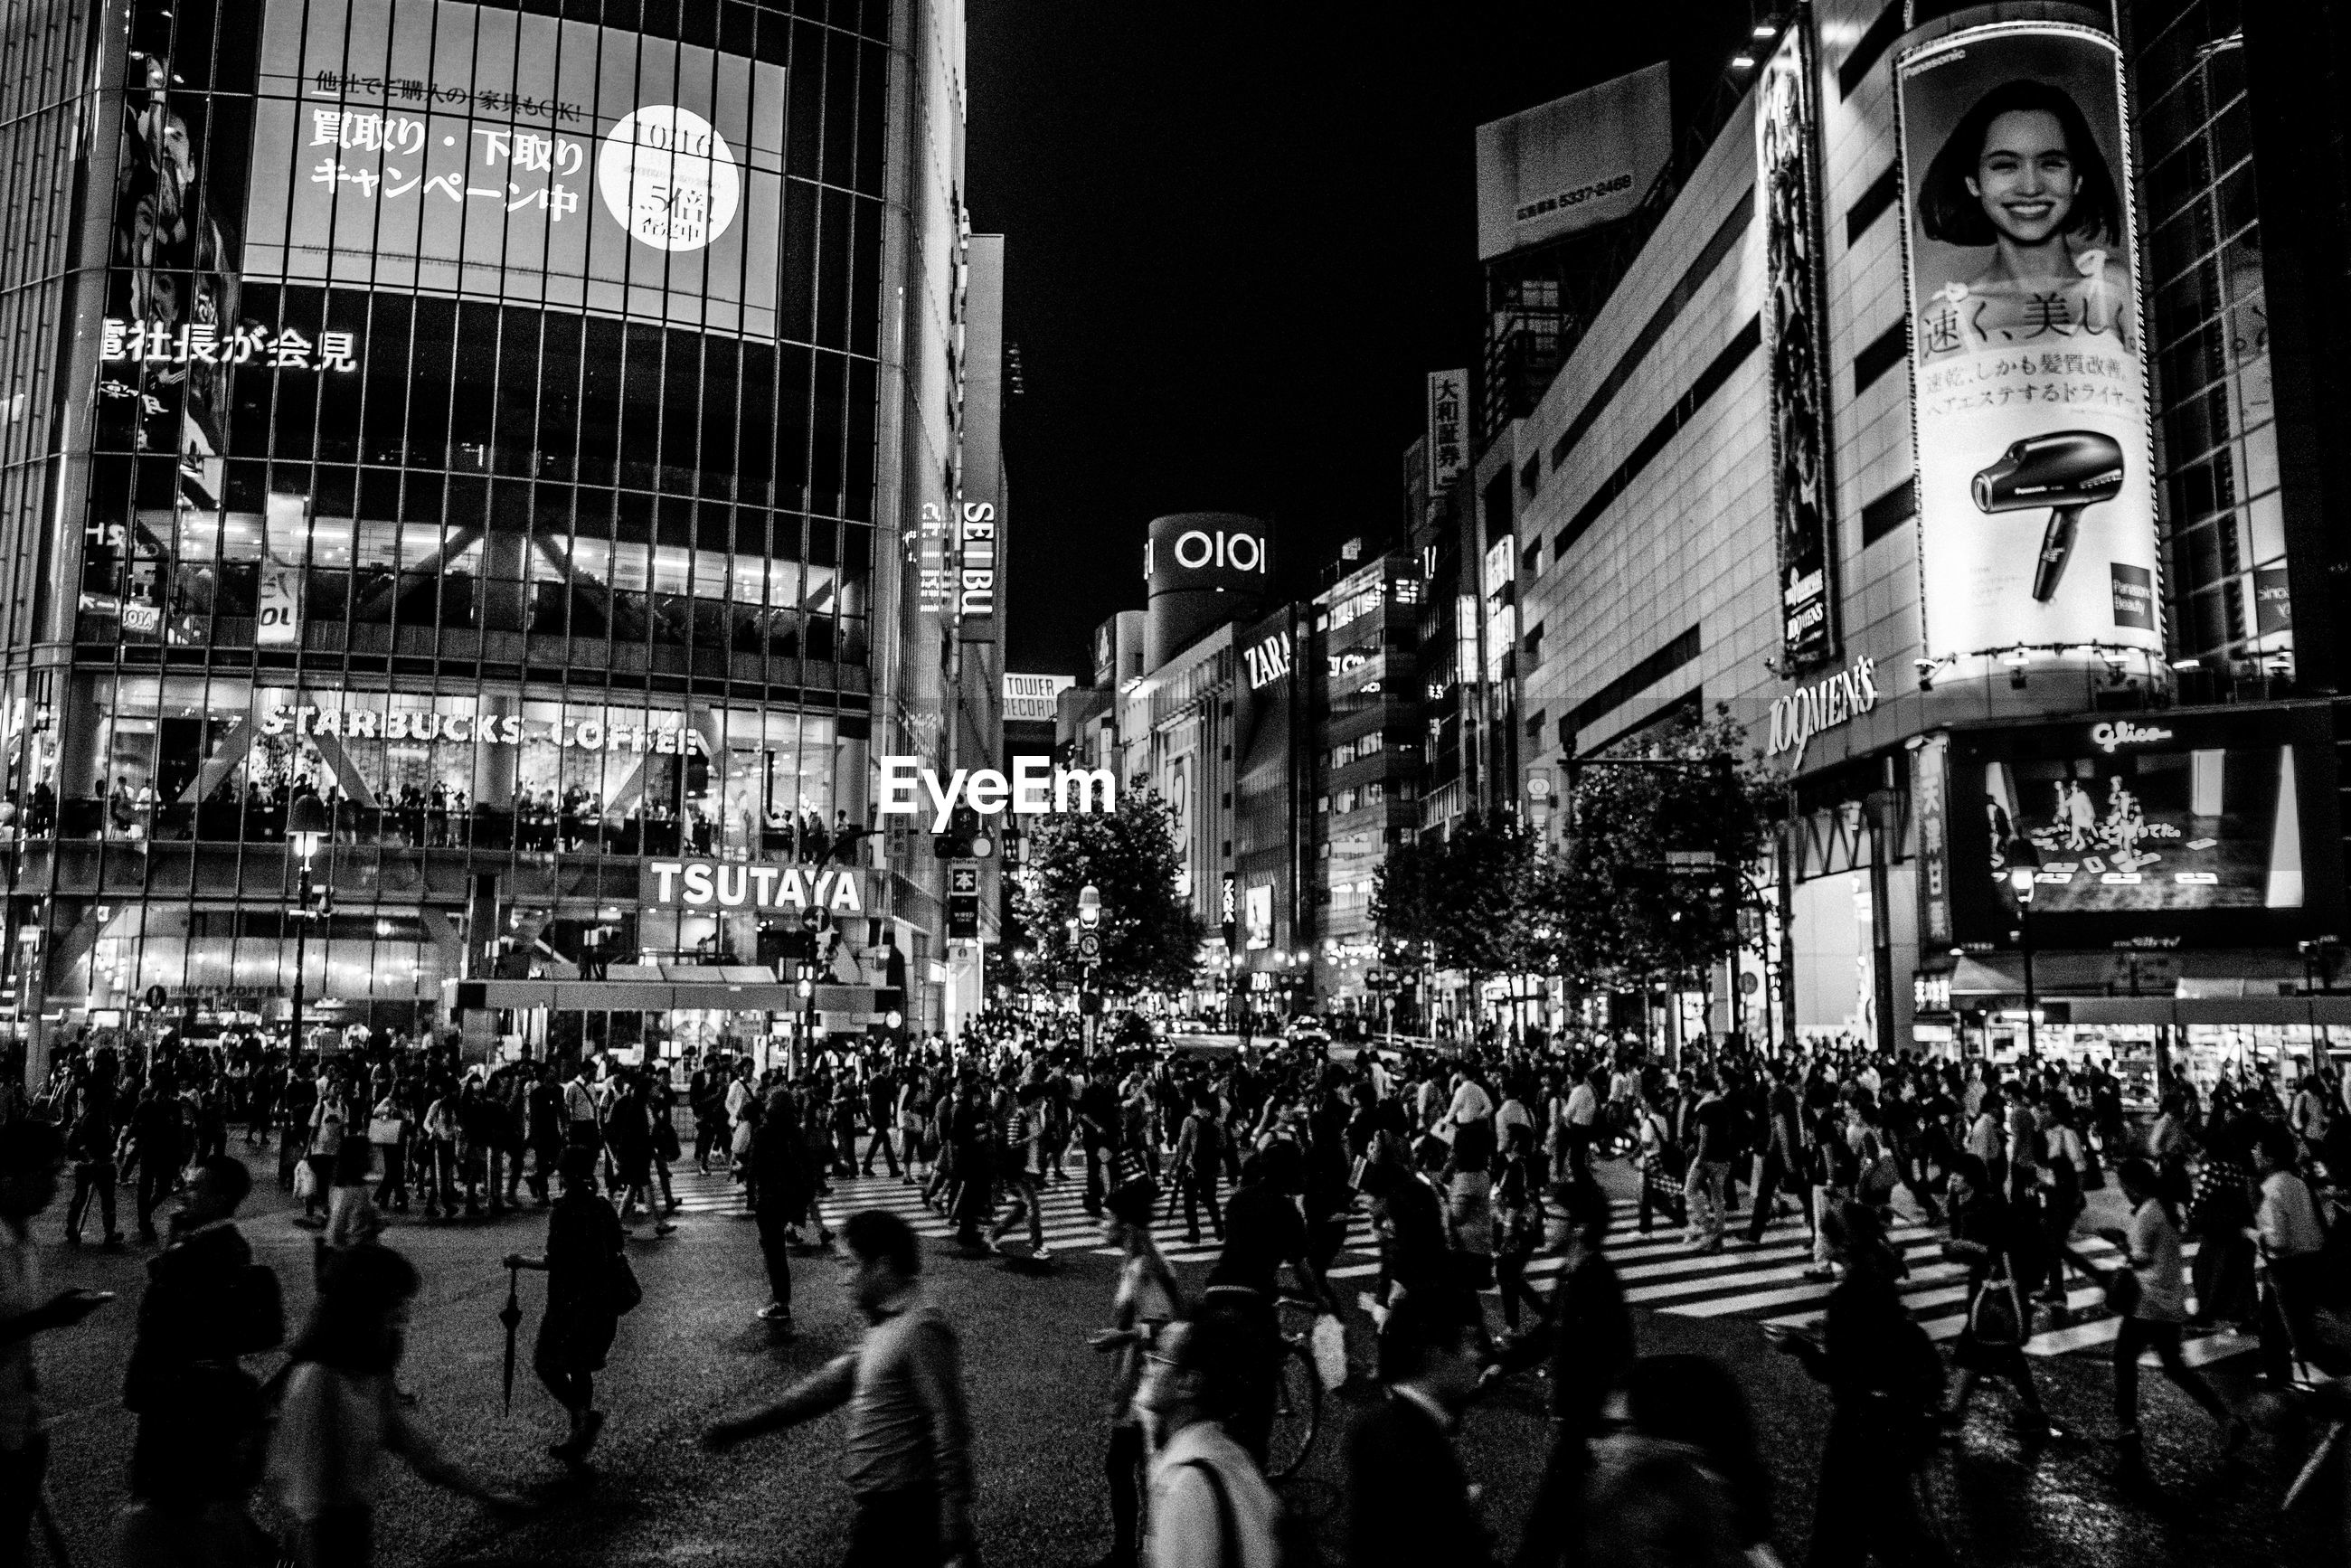 People at shibuya crossroad in city